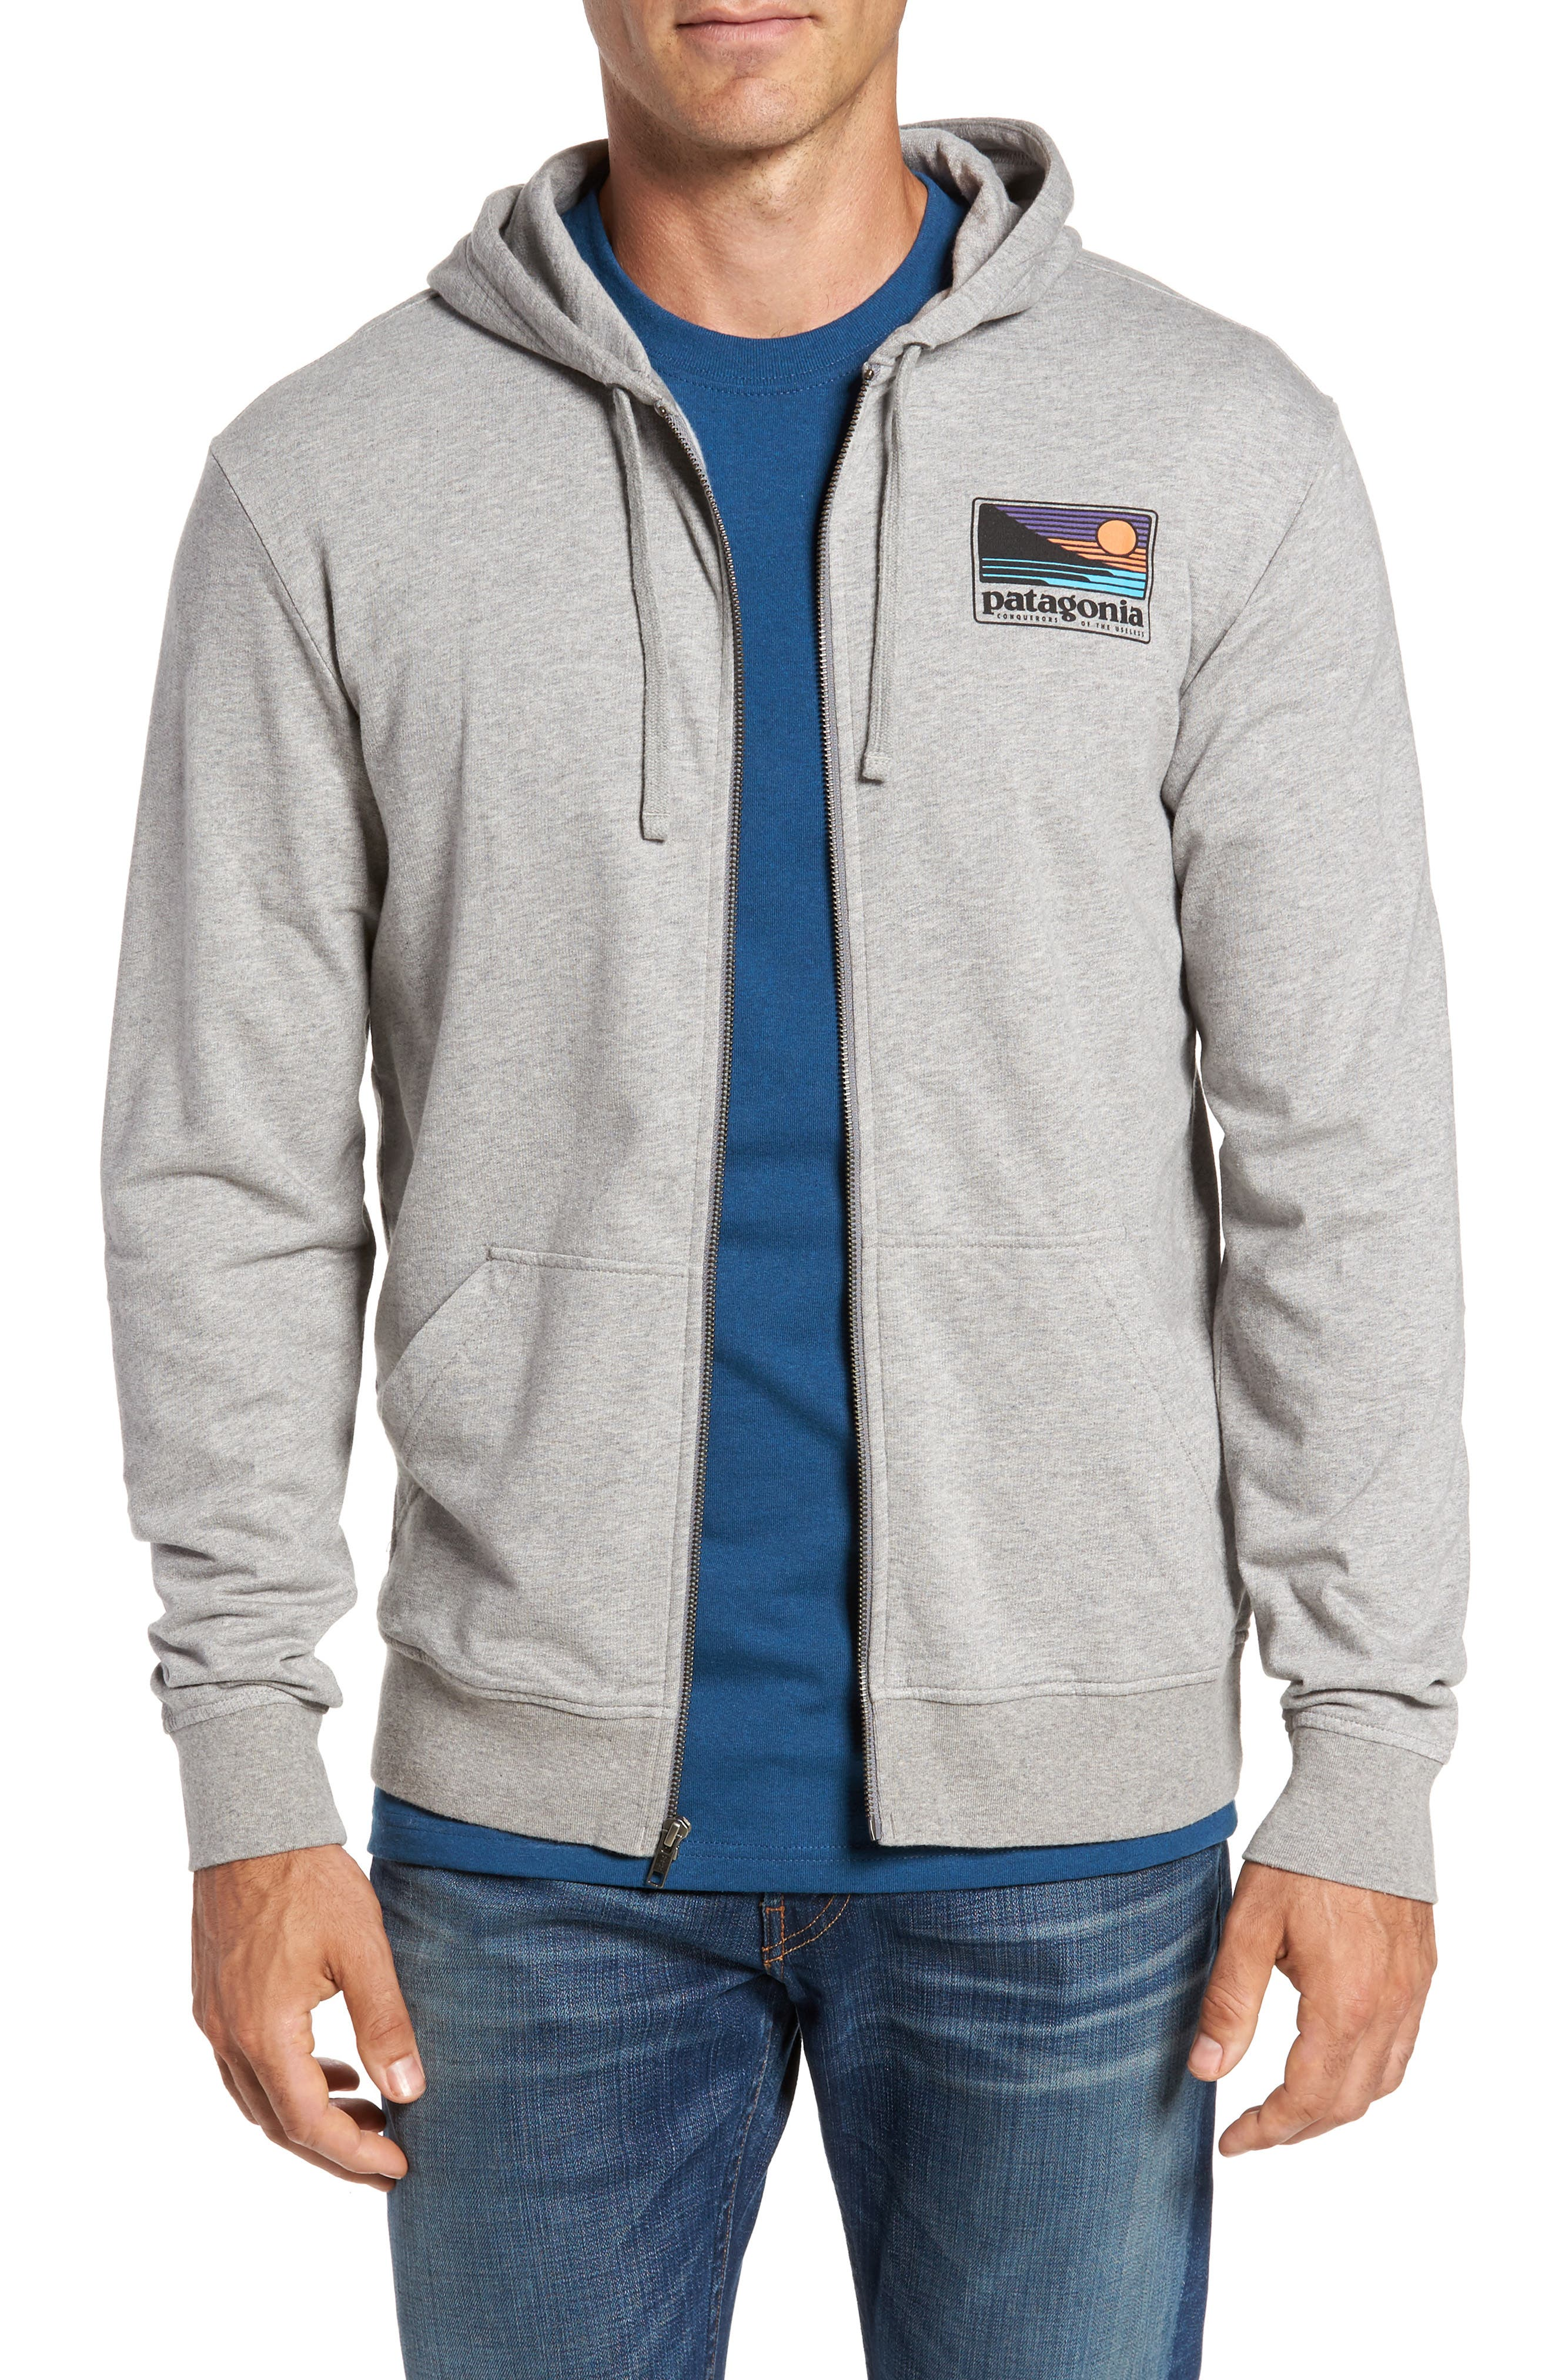 Up & Out Lightweight Zip Hoodie,                         Main,                         color, 020